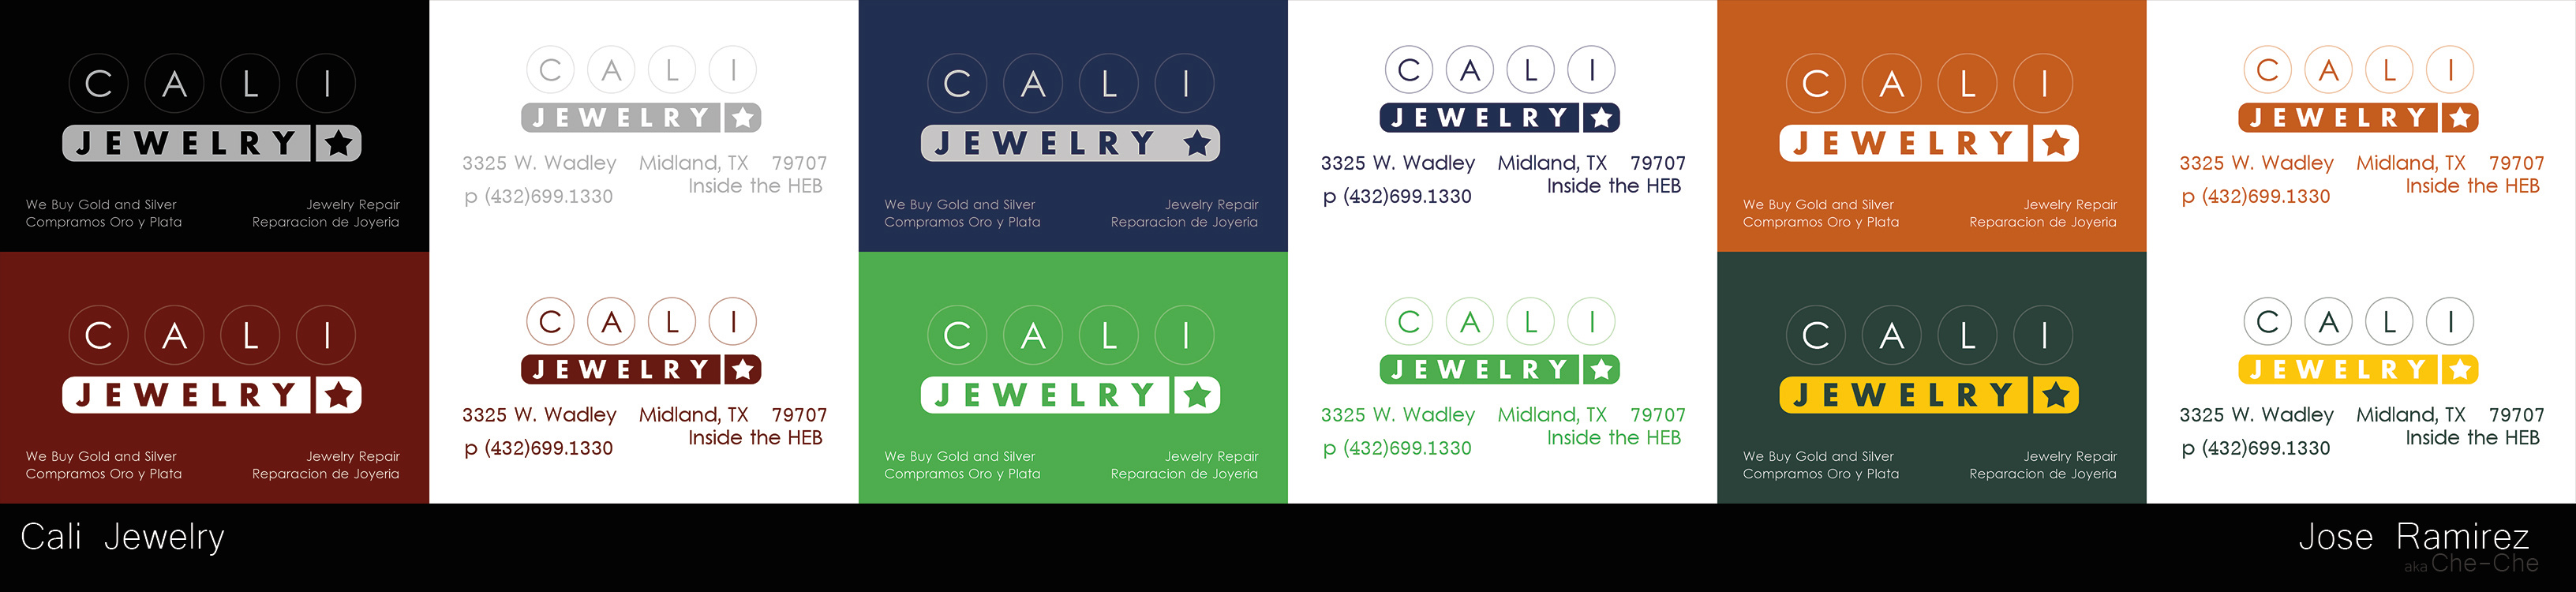 Cali Jewelry Business Card